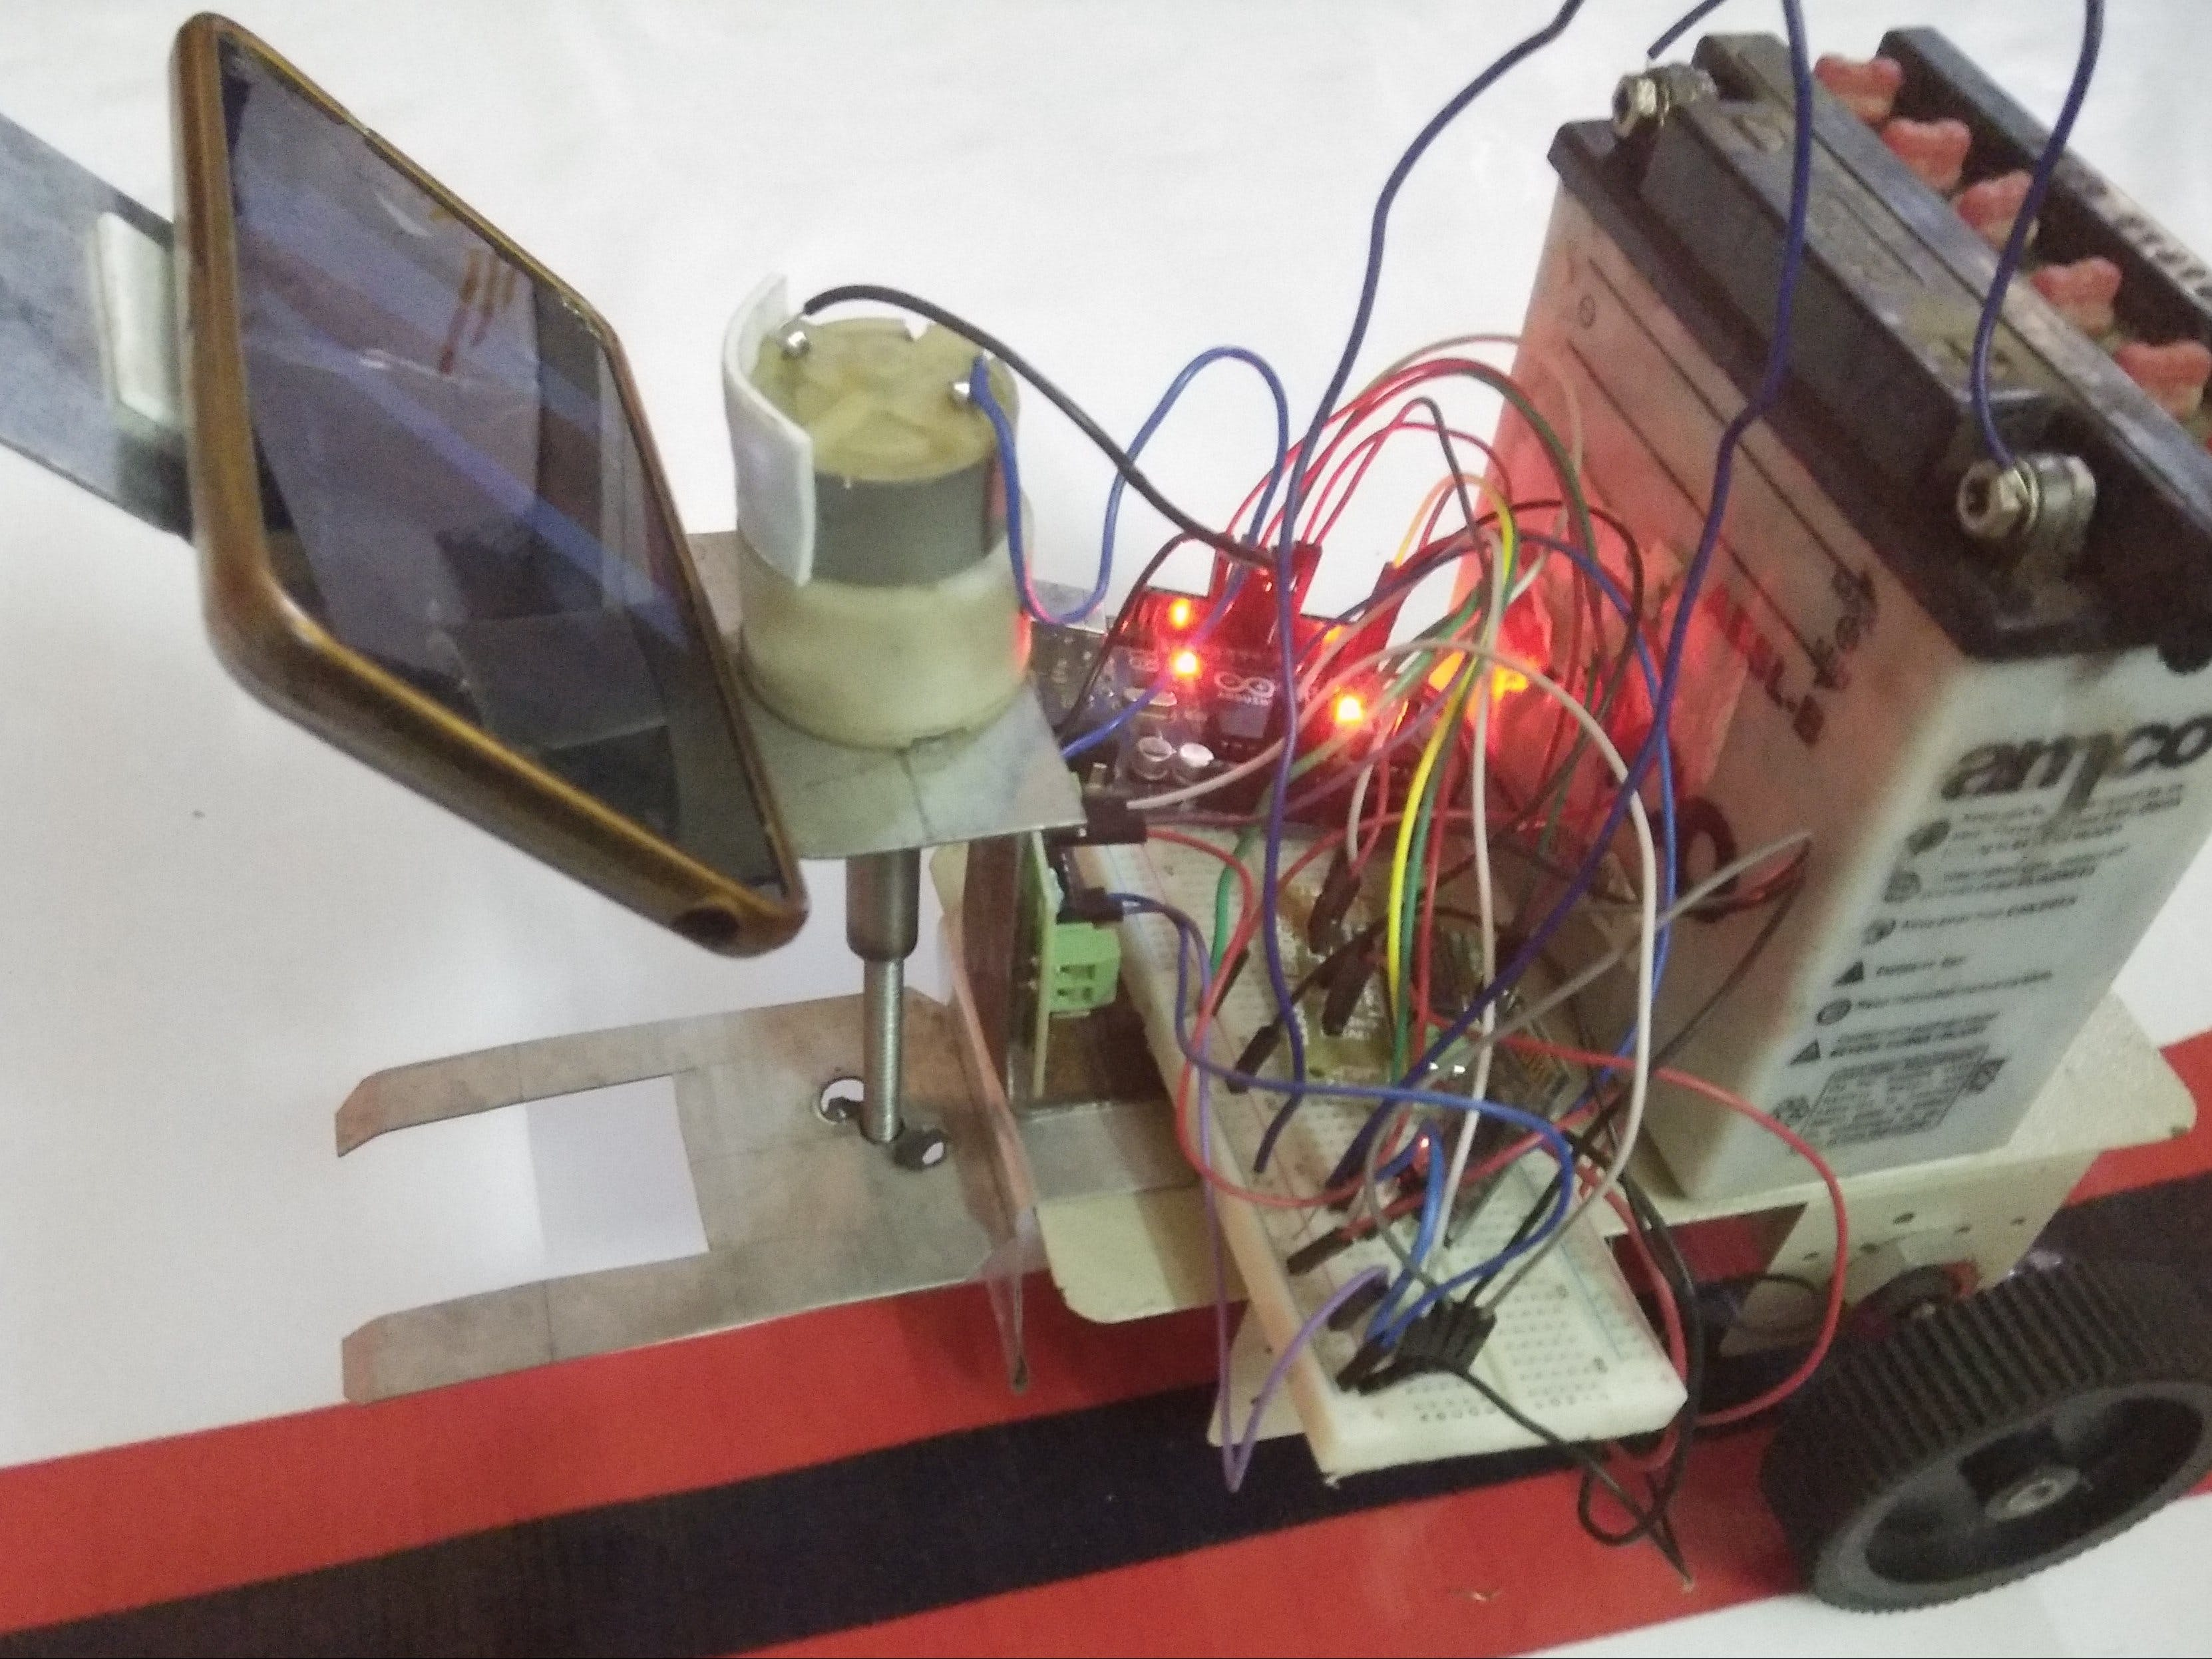 Vision-Based Self-Driving Pick and Place Robot